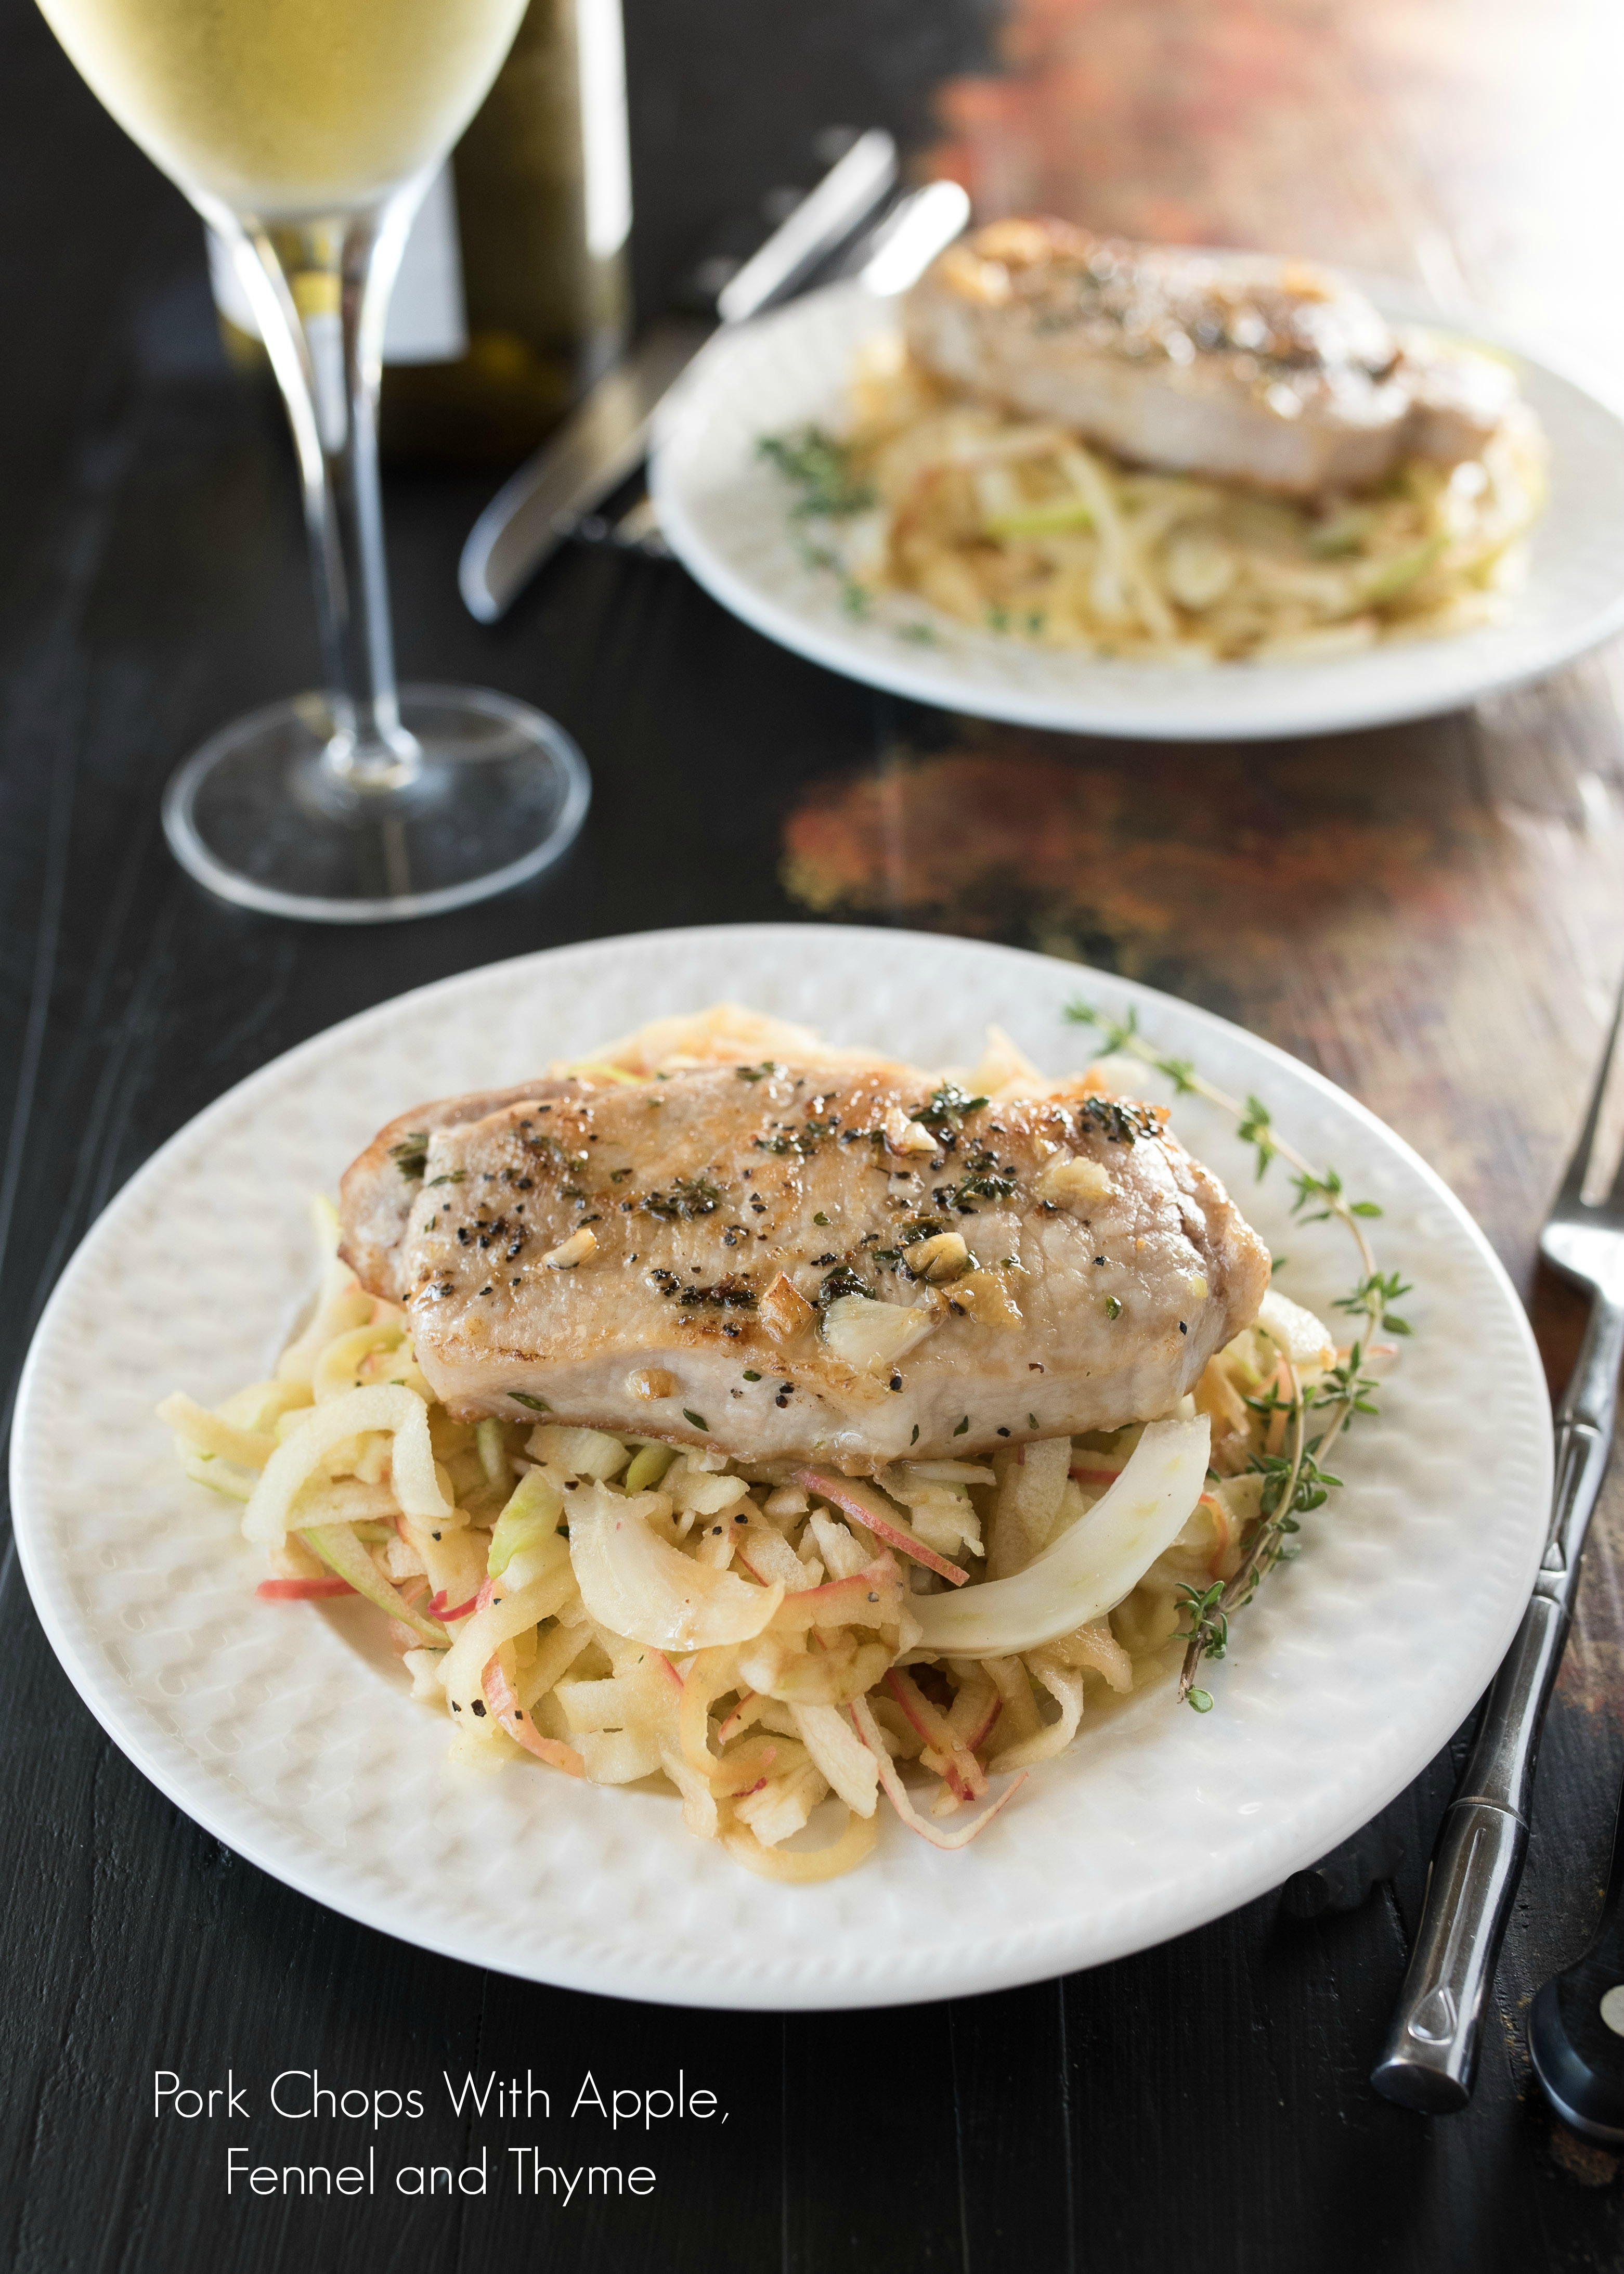 Pork Chops With Apple, Fennel and Thyme